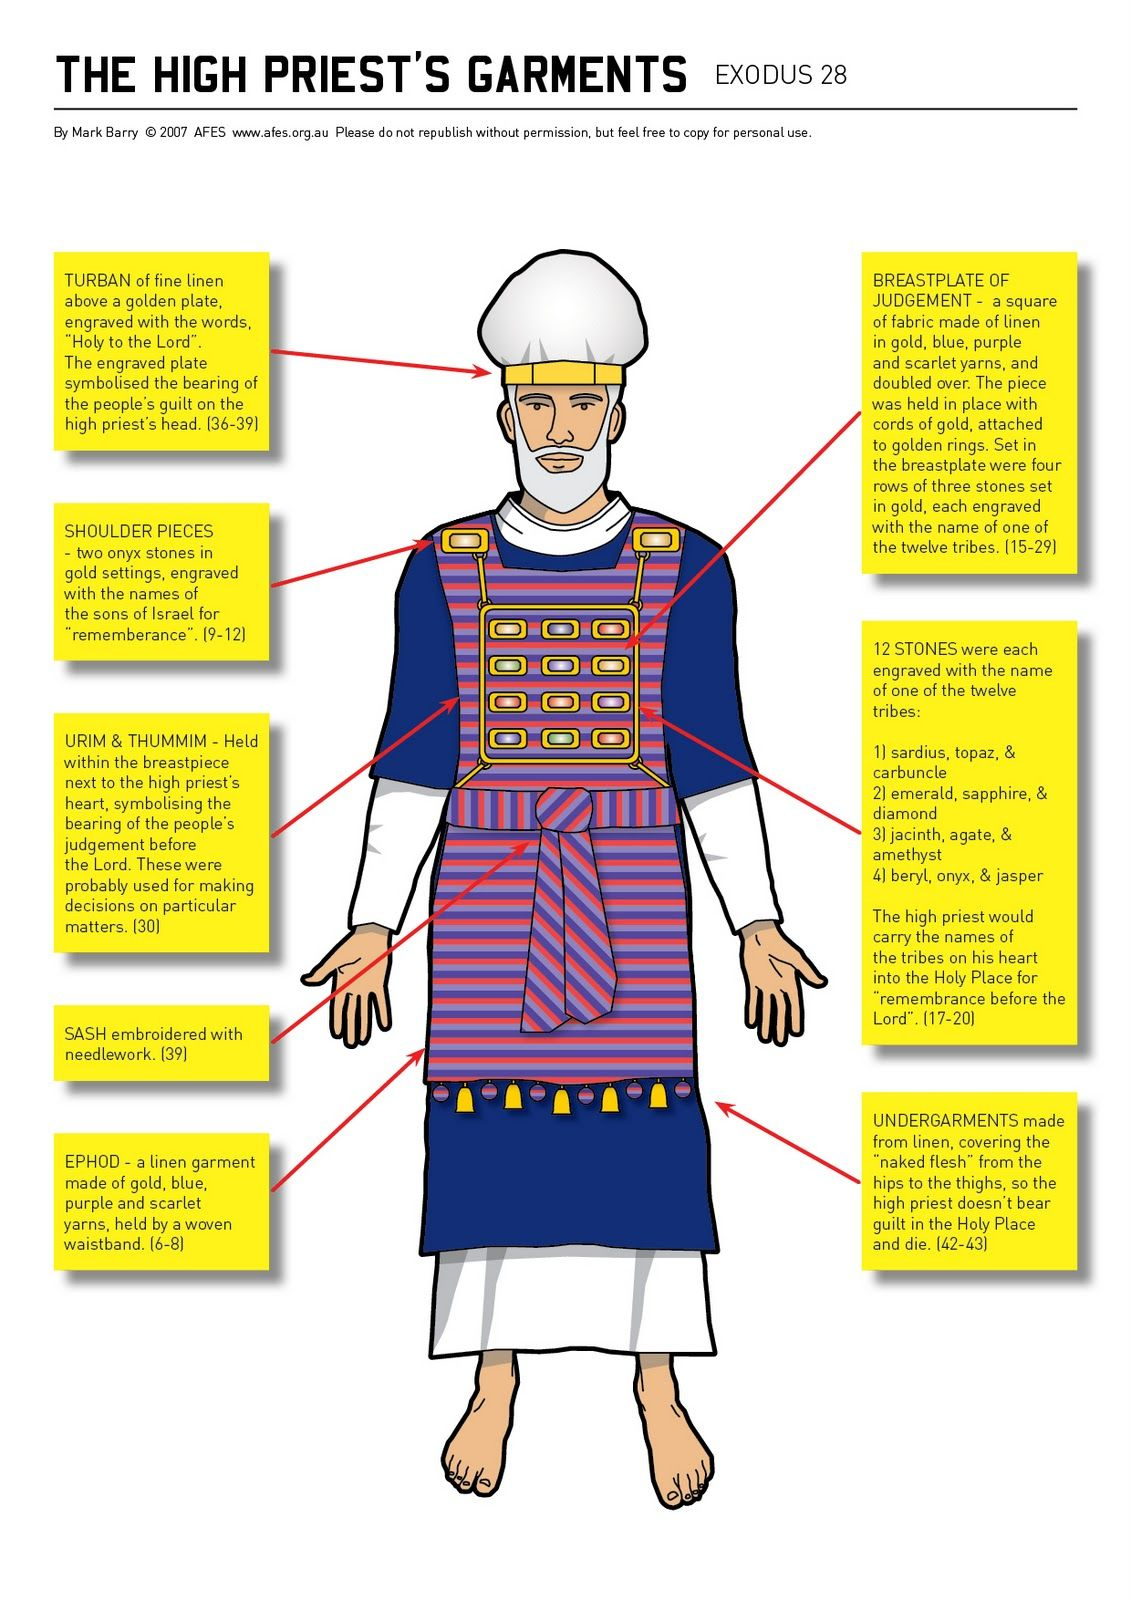 priestly garments meaning holy garments